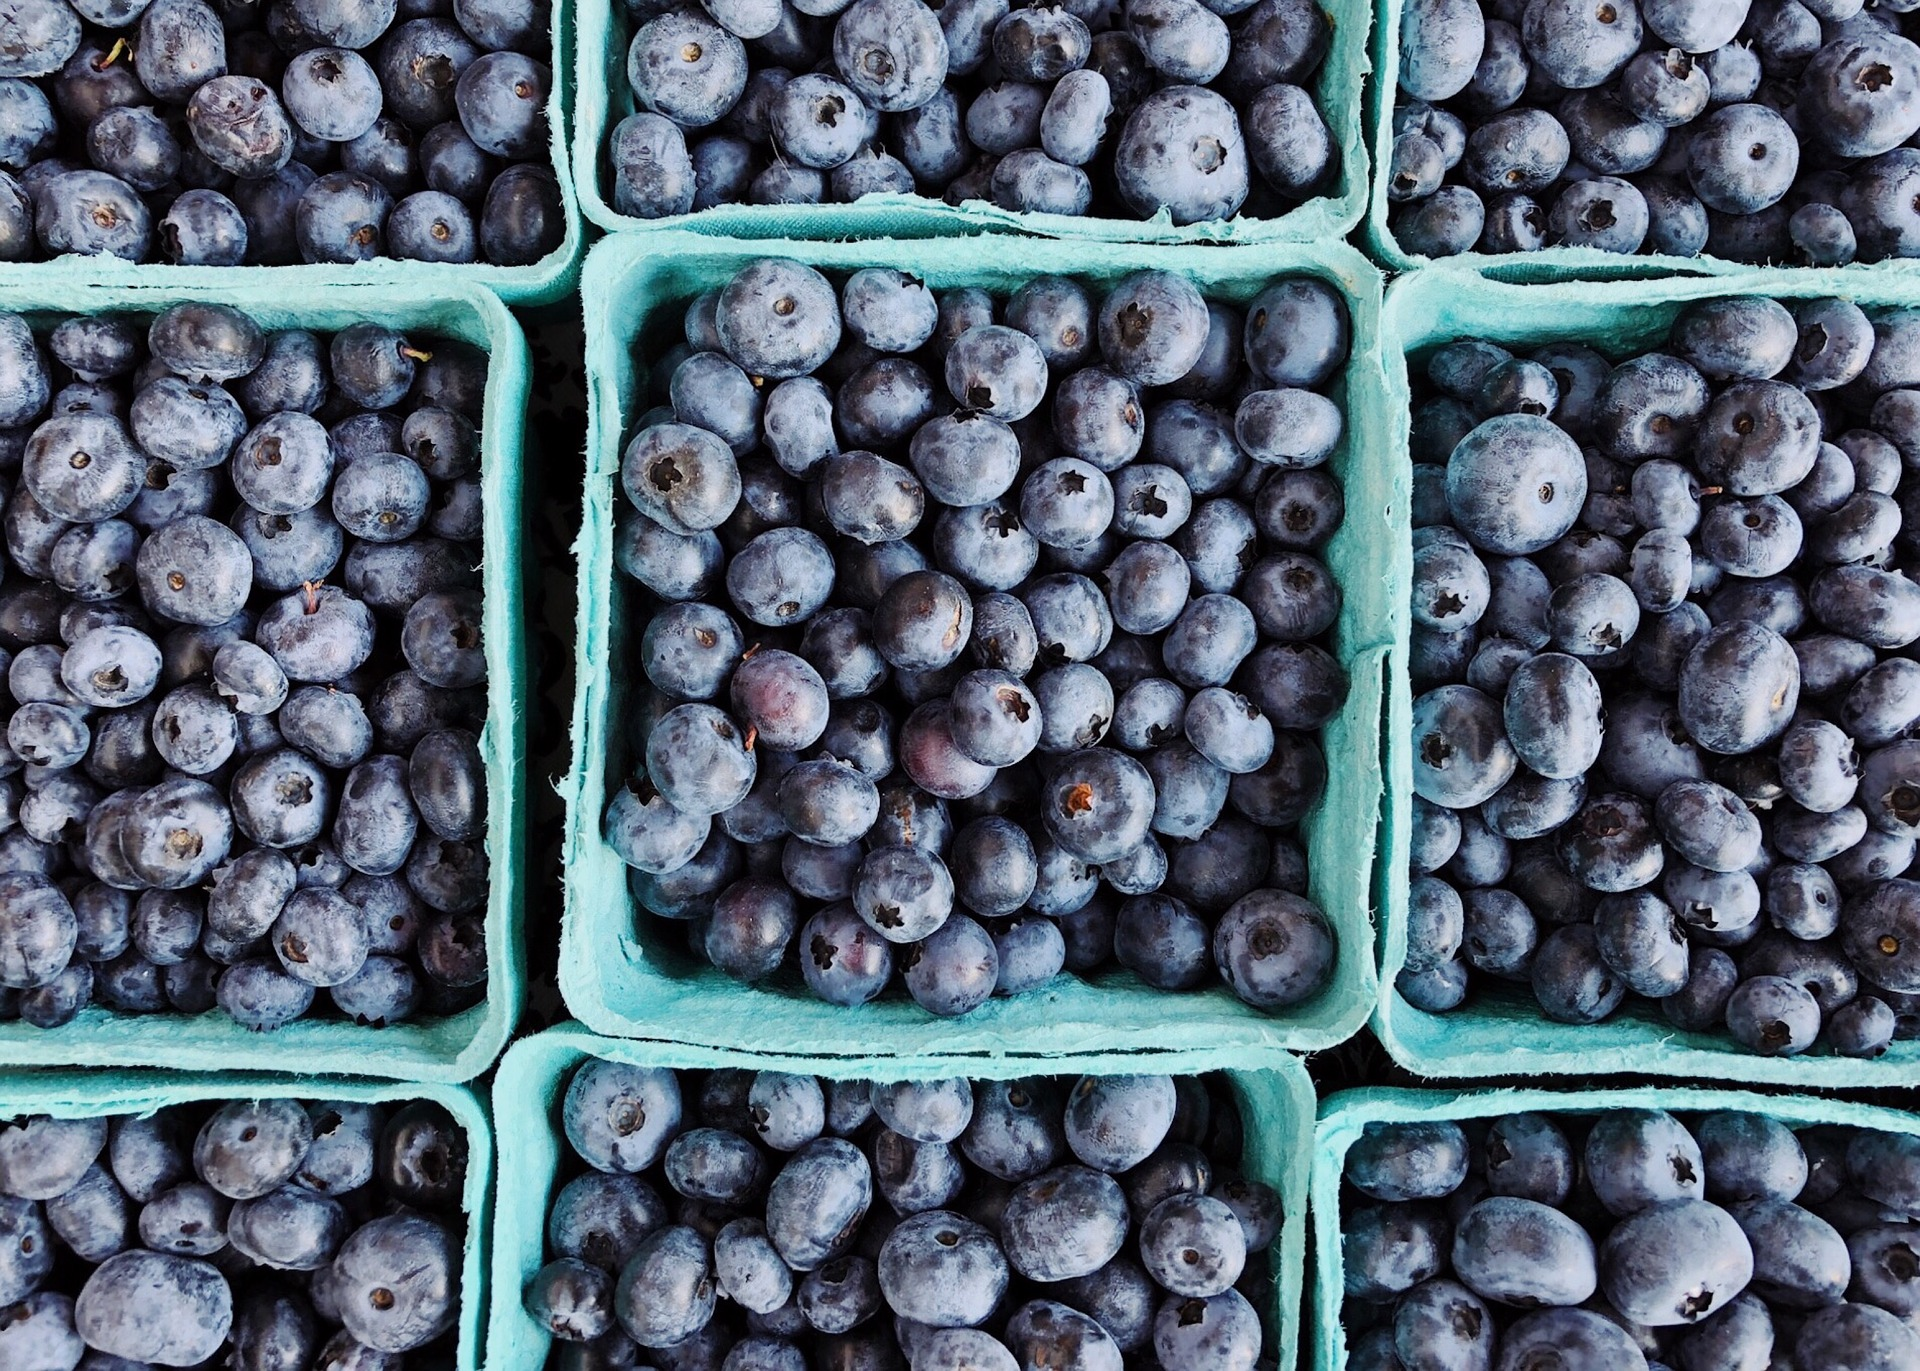 supply of blueberries on the North American market